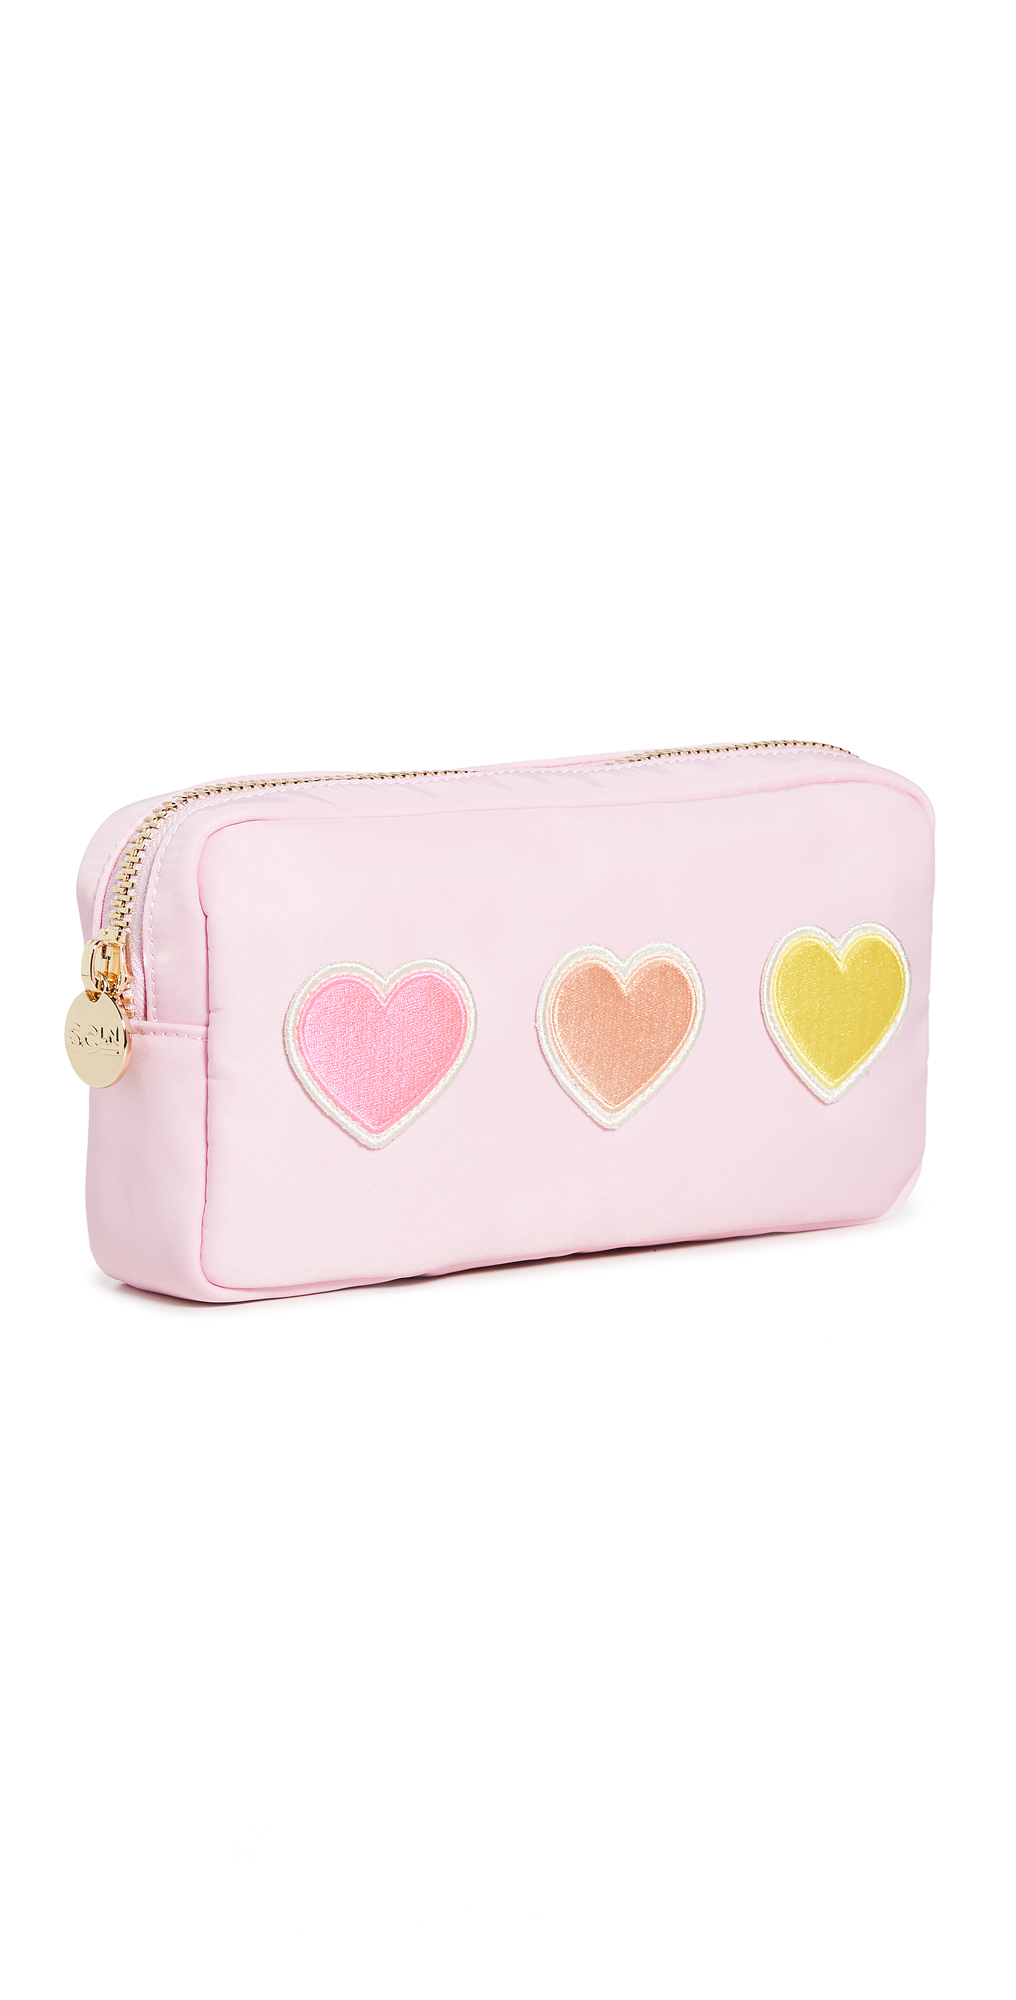 Stoney Clover Lane Flamingo Small Pouch with Embroidered Heart Patches